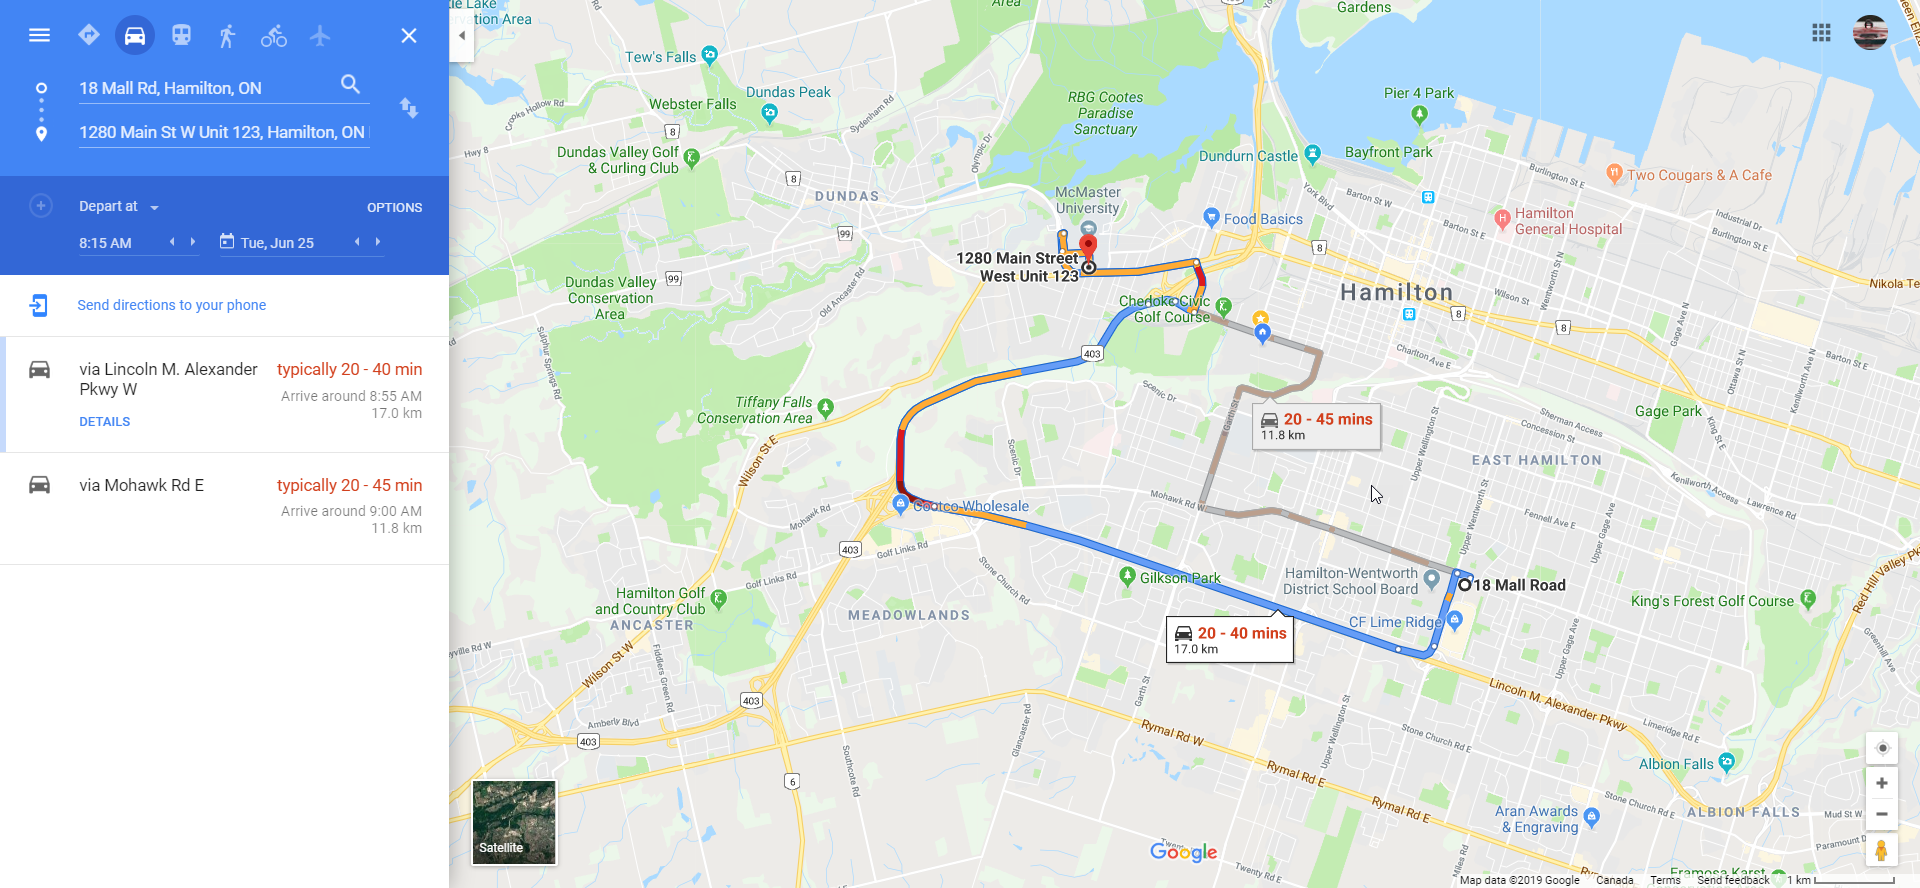 From_Approximate_Centre_Point_Ward_7_(18_Mall_Road)_to_McMaster_University-Hospital.png